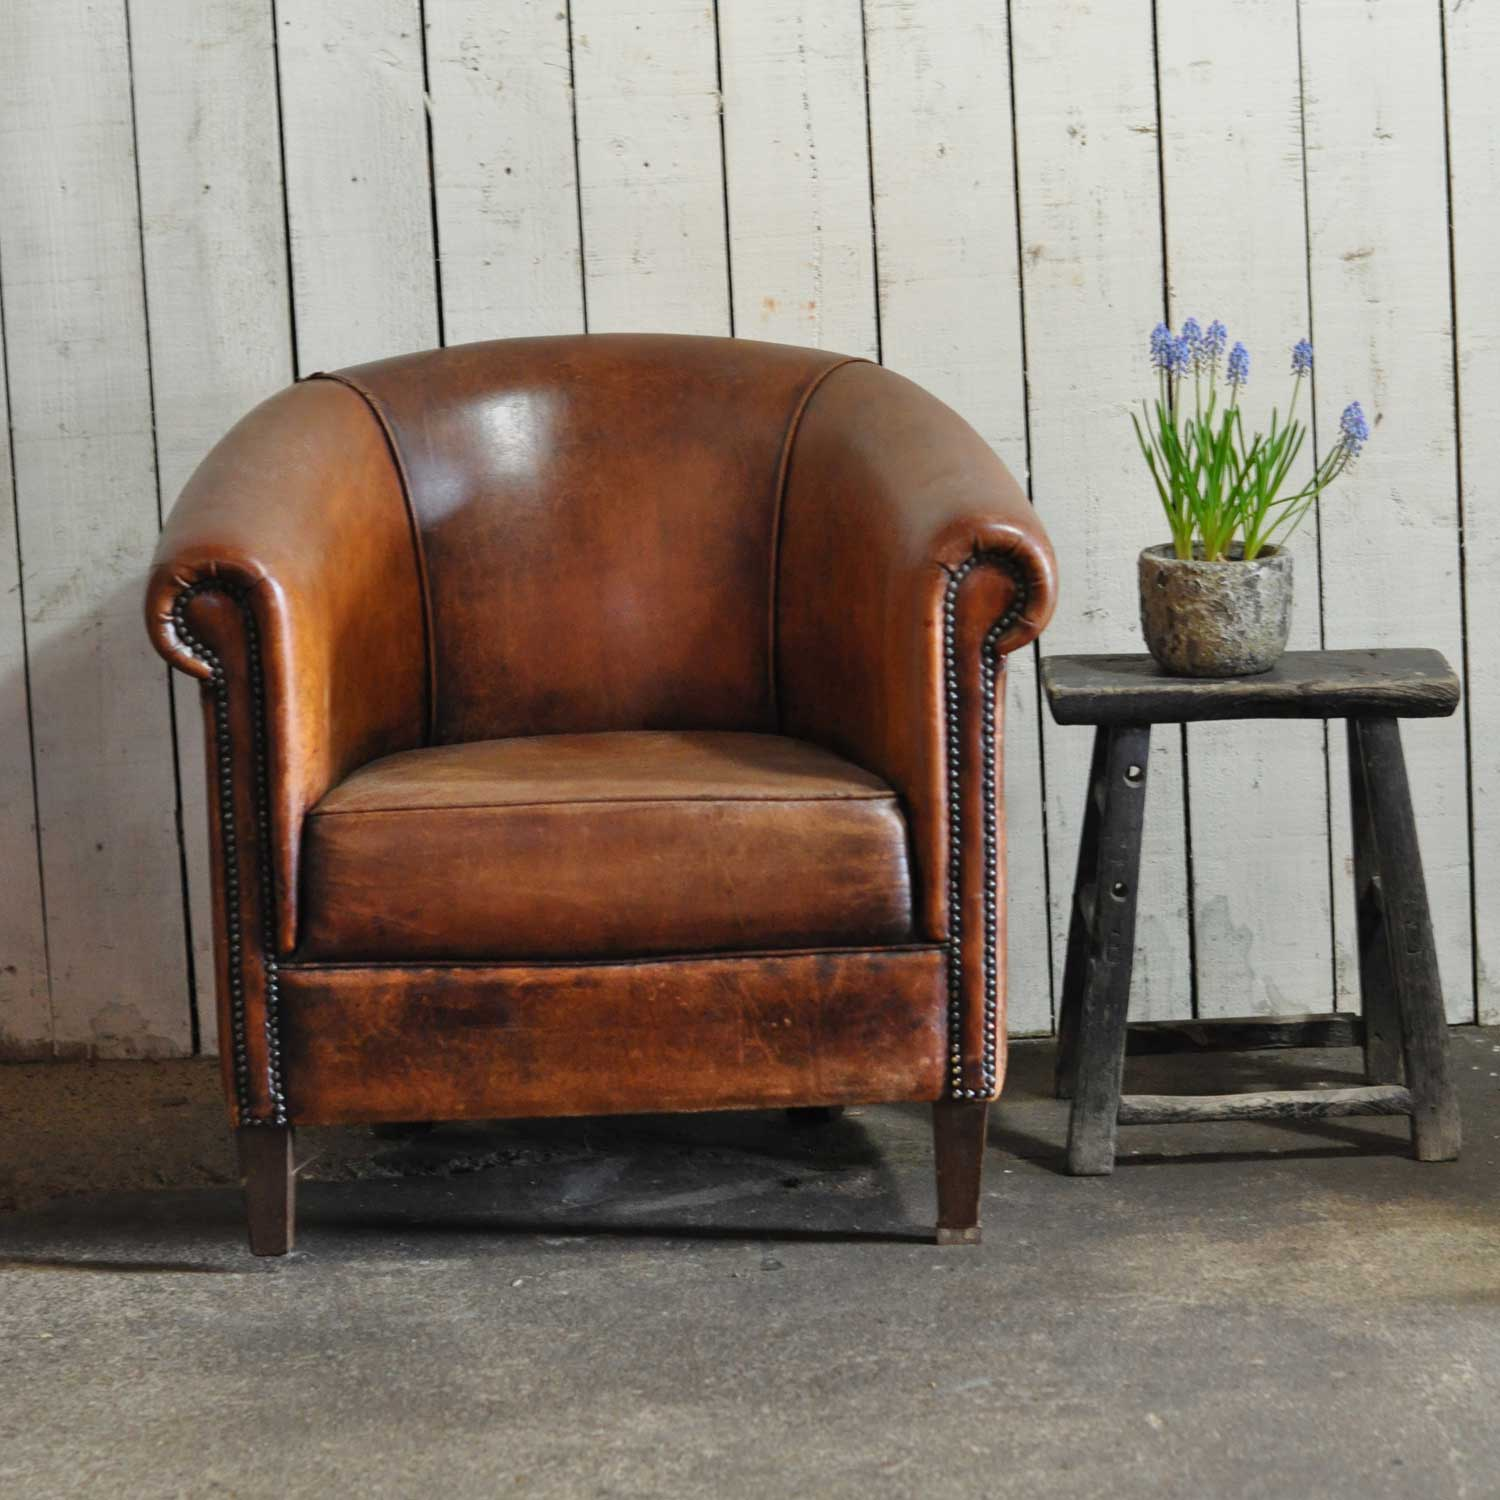 Vintage Club Chairs Vintage Worn French Leather Club Chair With Arms